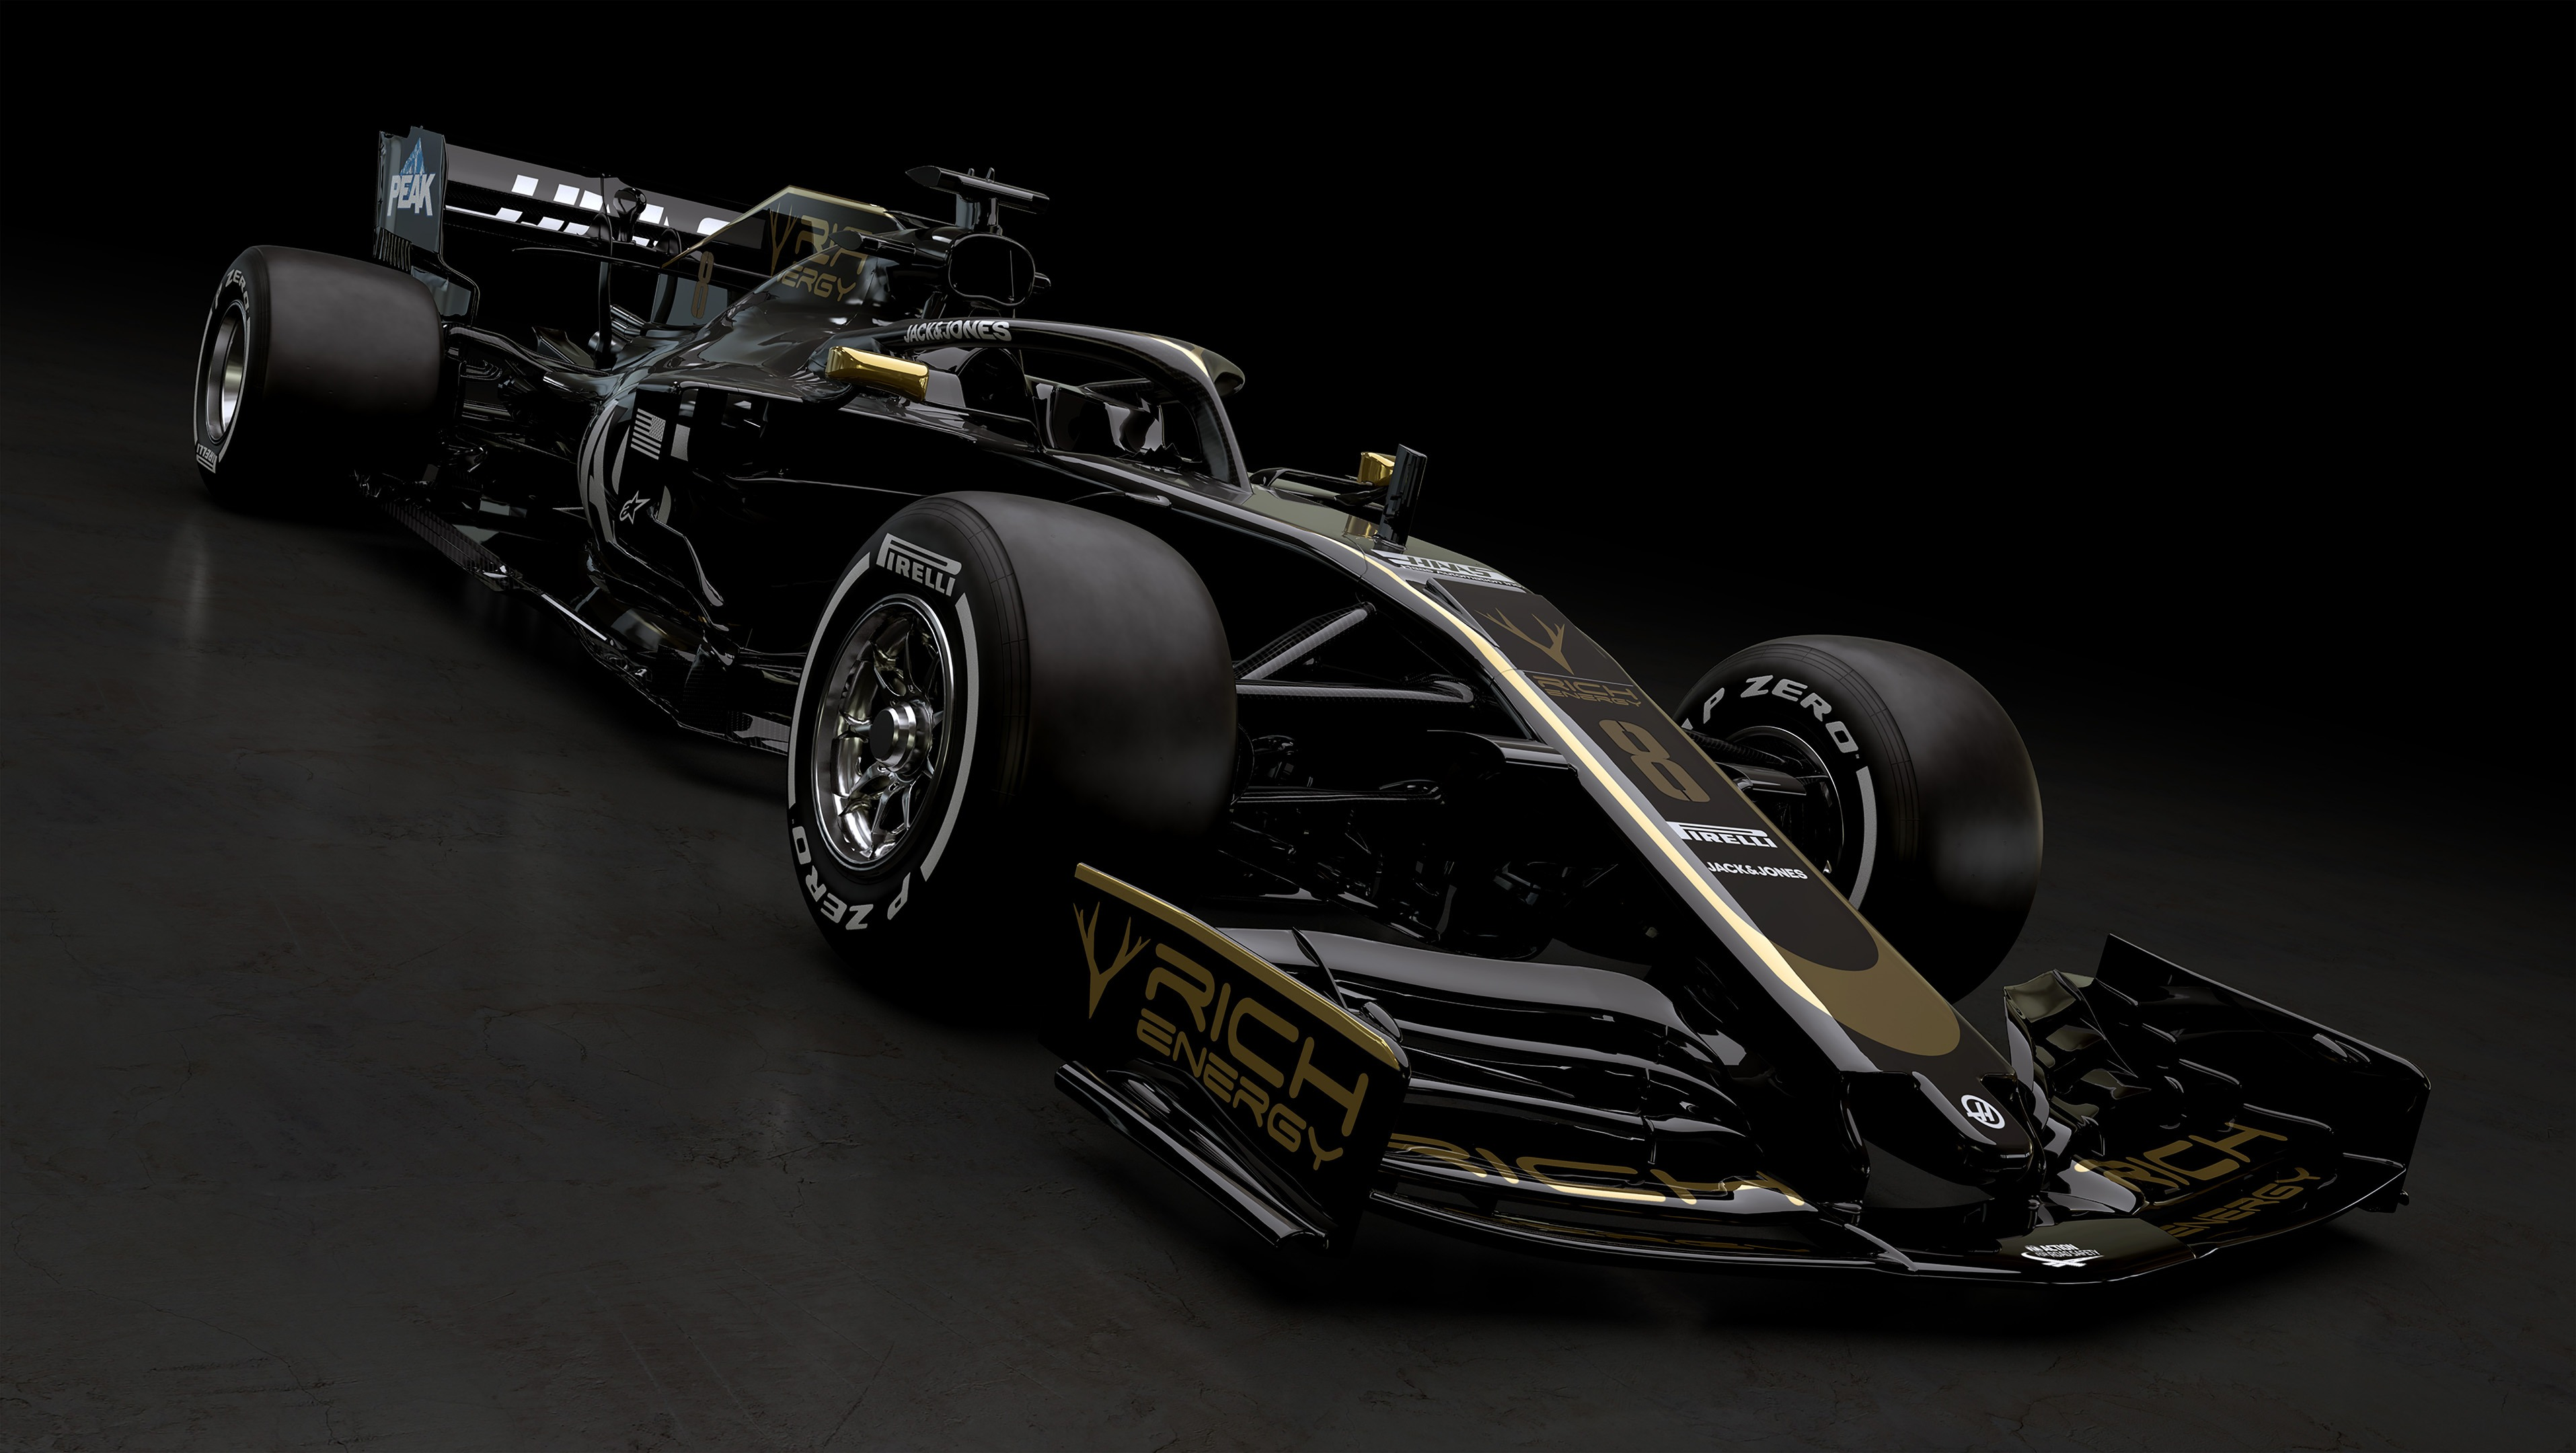 VF19 2019 RICH ENERGY HAAS F1 TEAM [FERRARI 16L V6 Turbo] 3830x2160